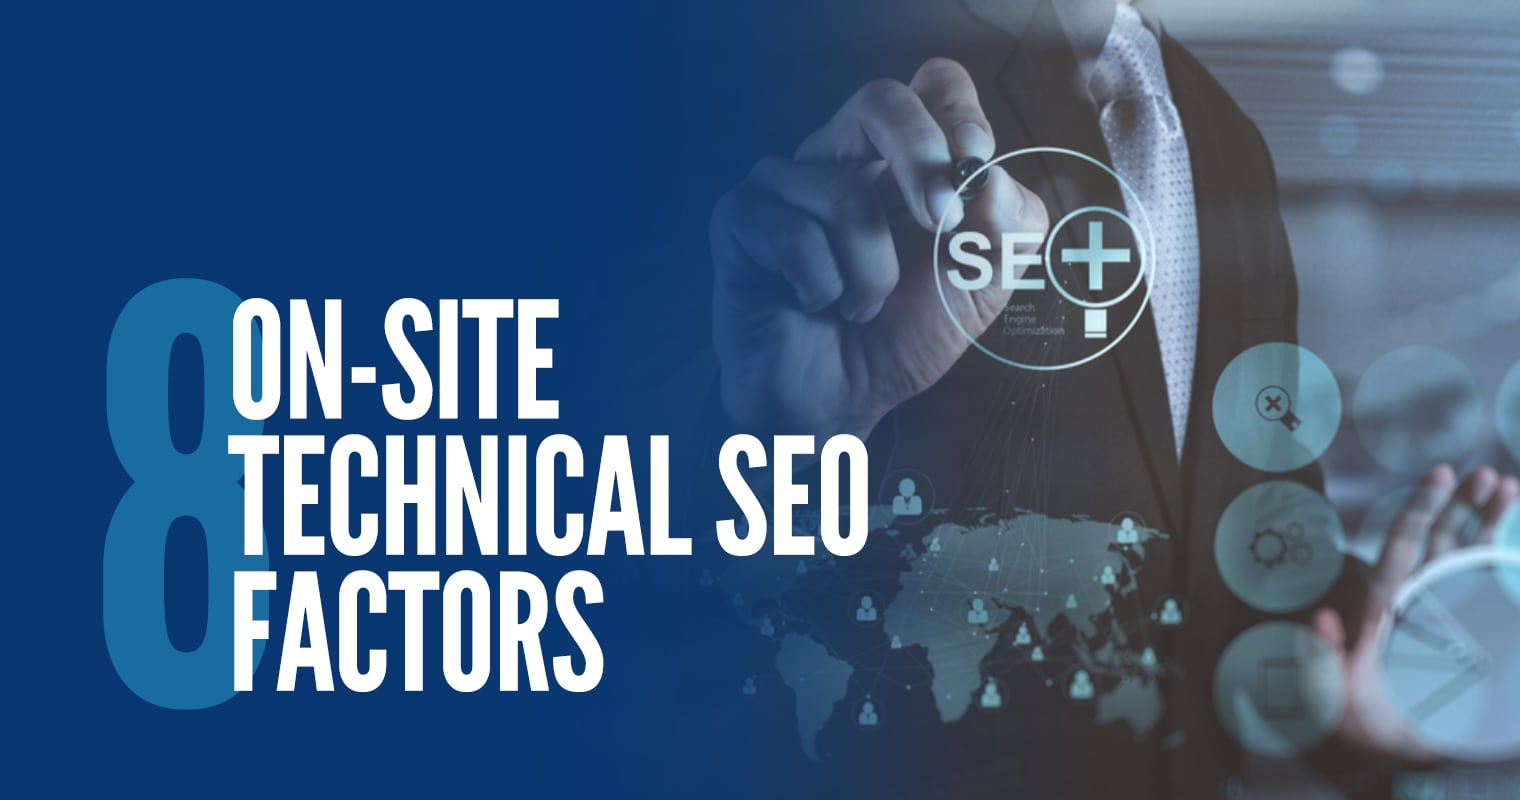 On-site Technical SEO Factors